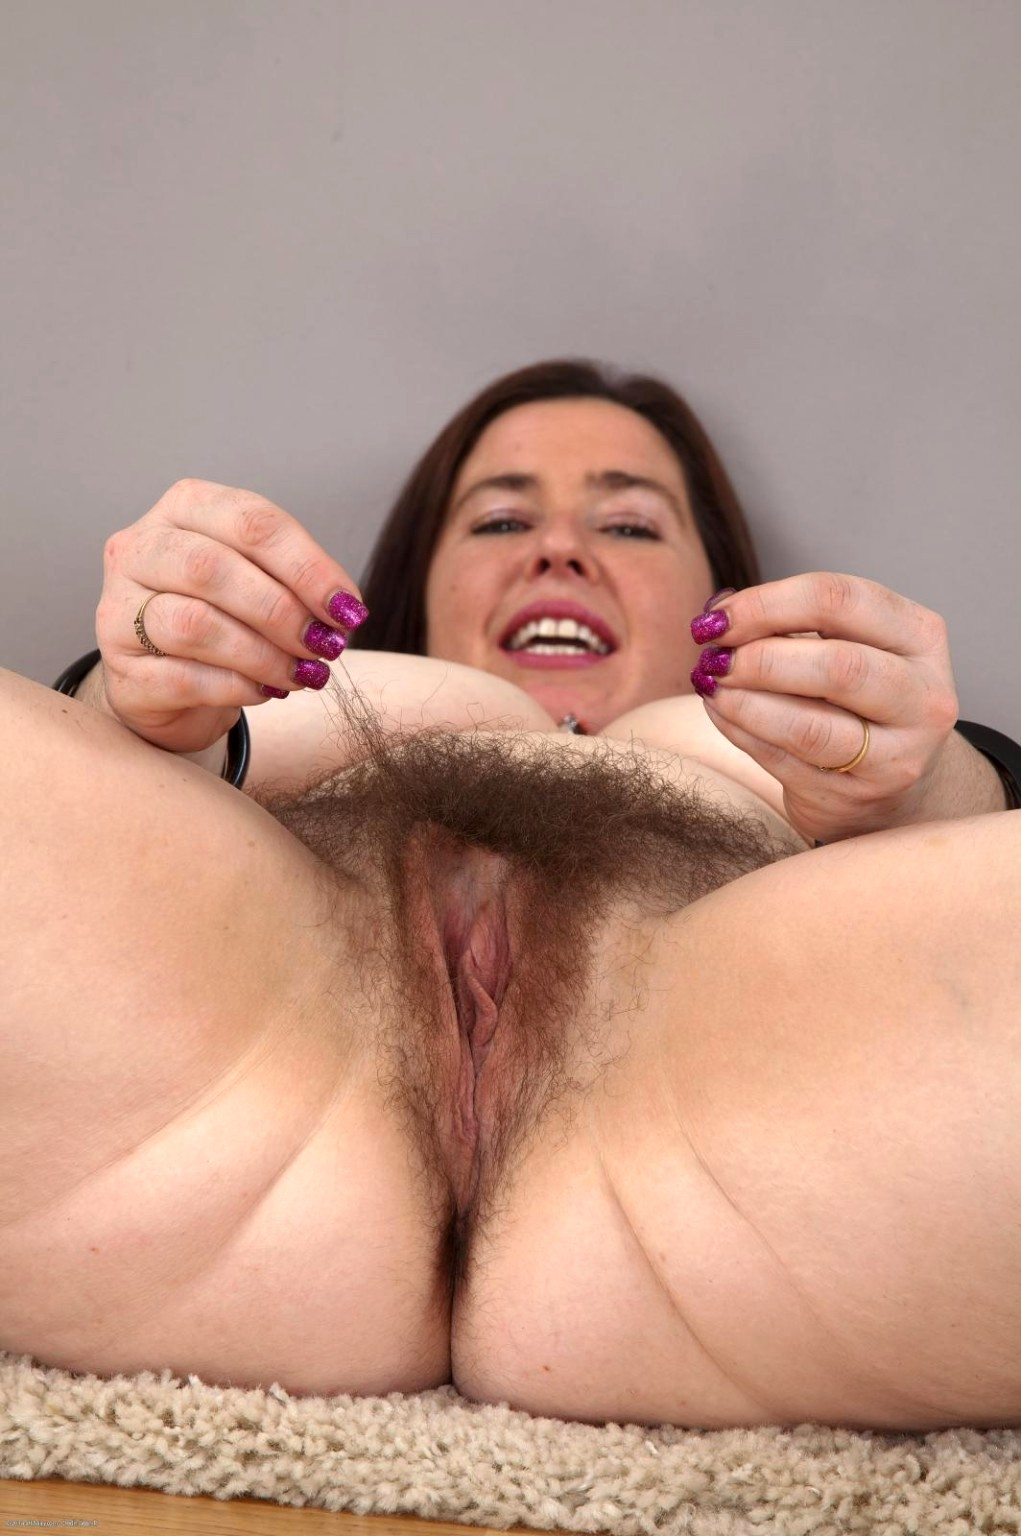 Atk Hairy Atkhairy Model Friendly Mature Ig Sex Hd Pics-3428